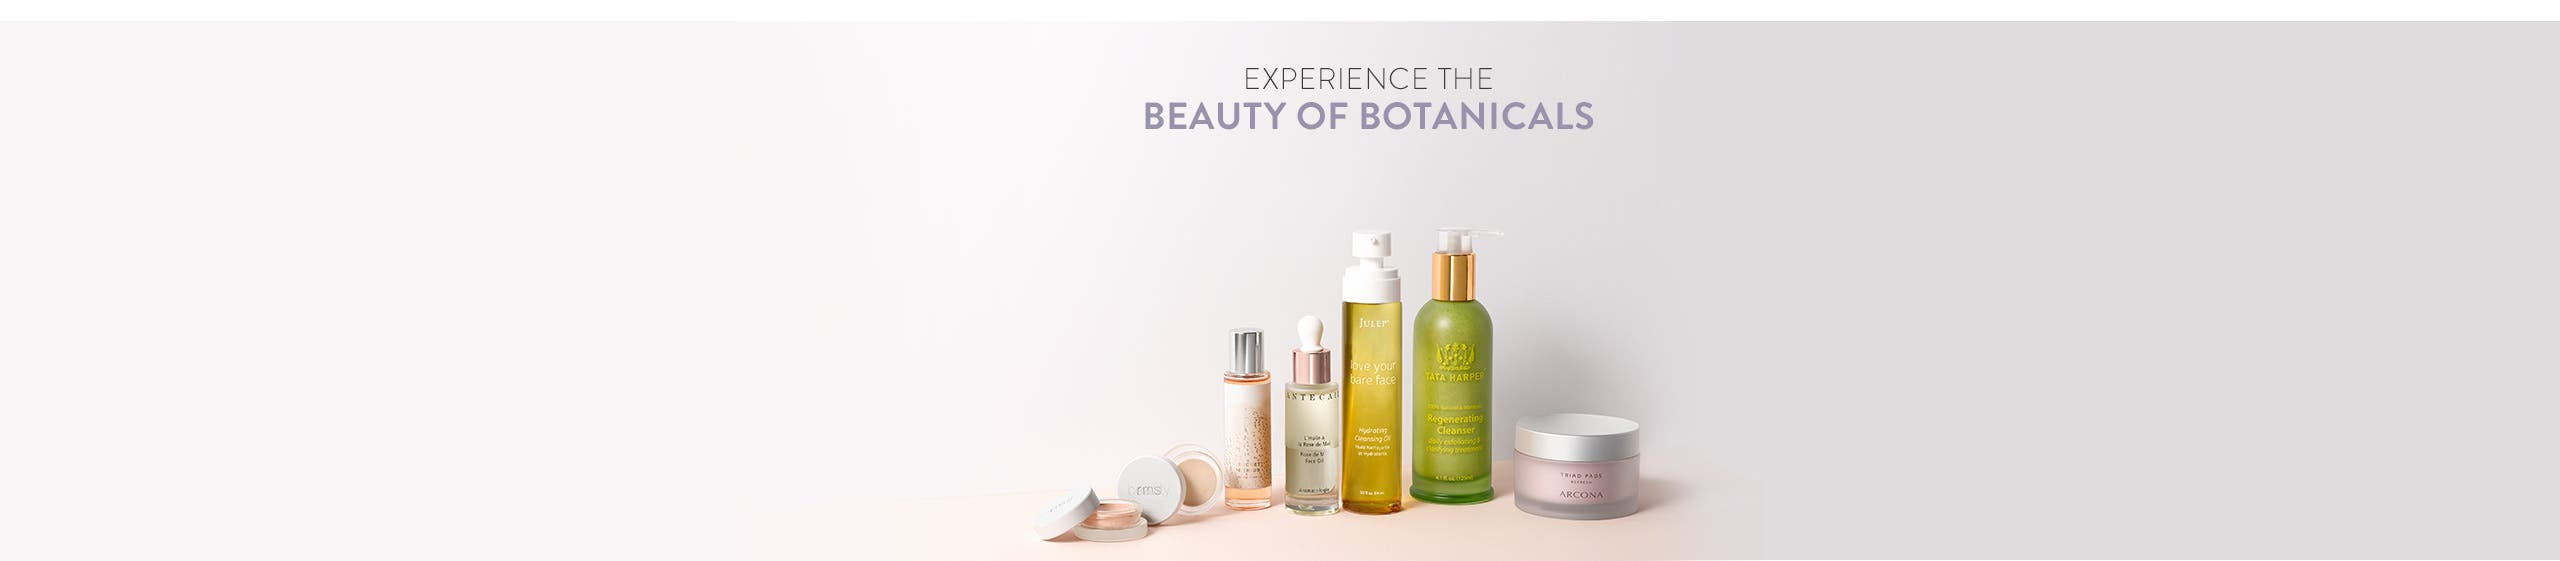 Experience the beauty of botanicals.